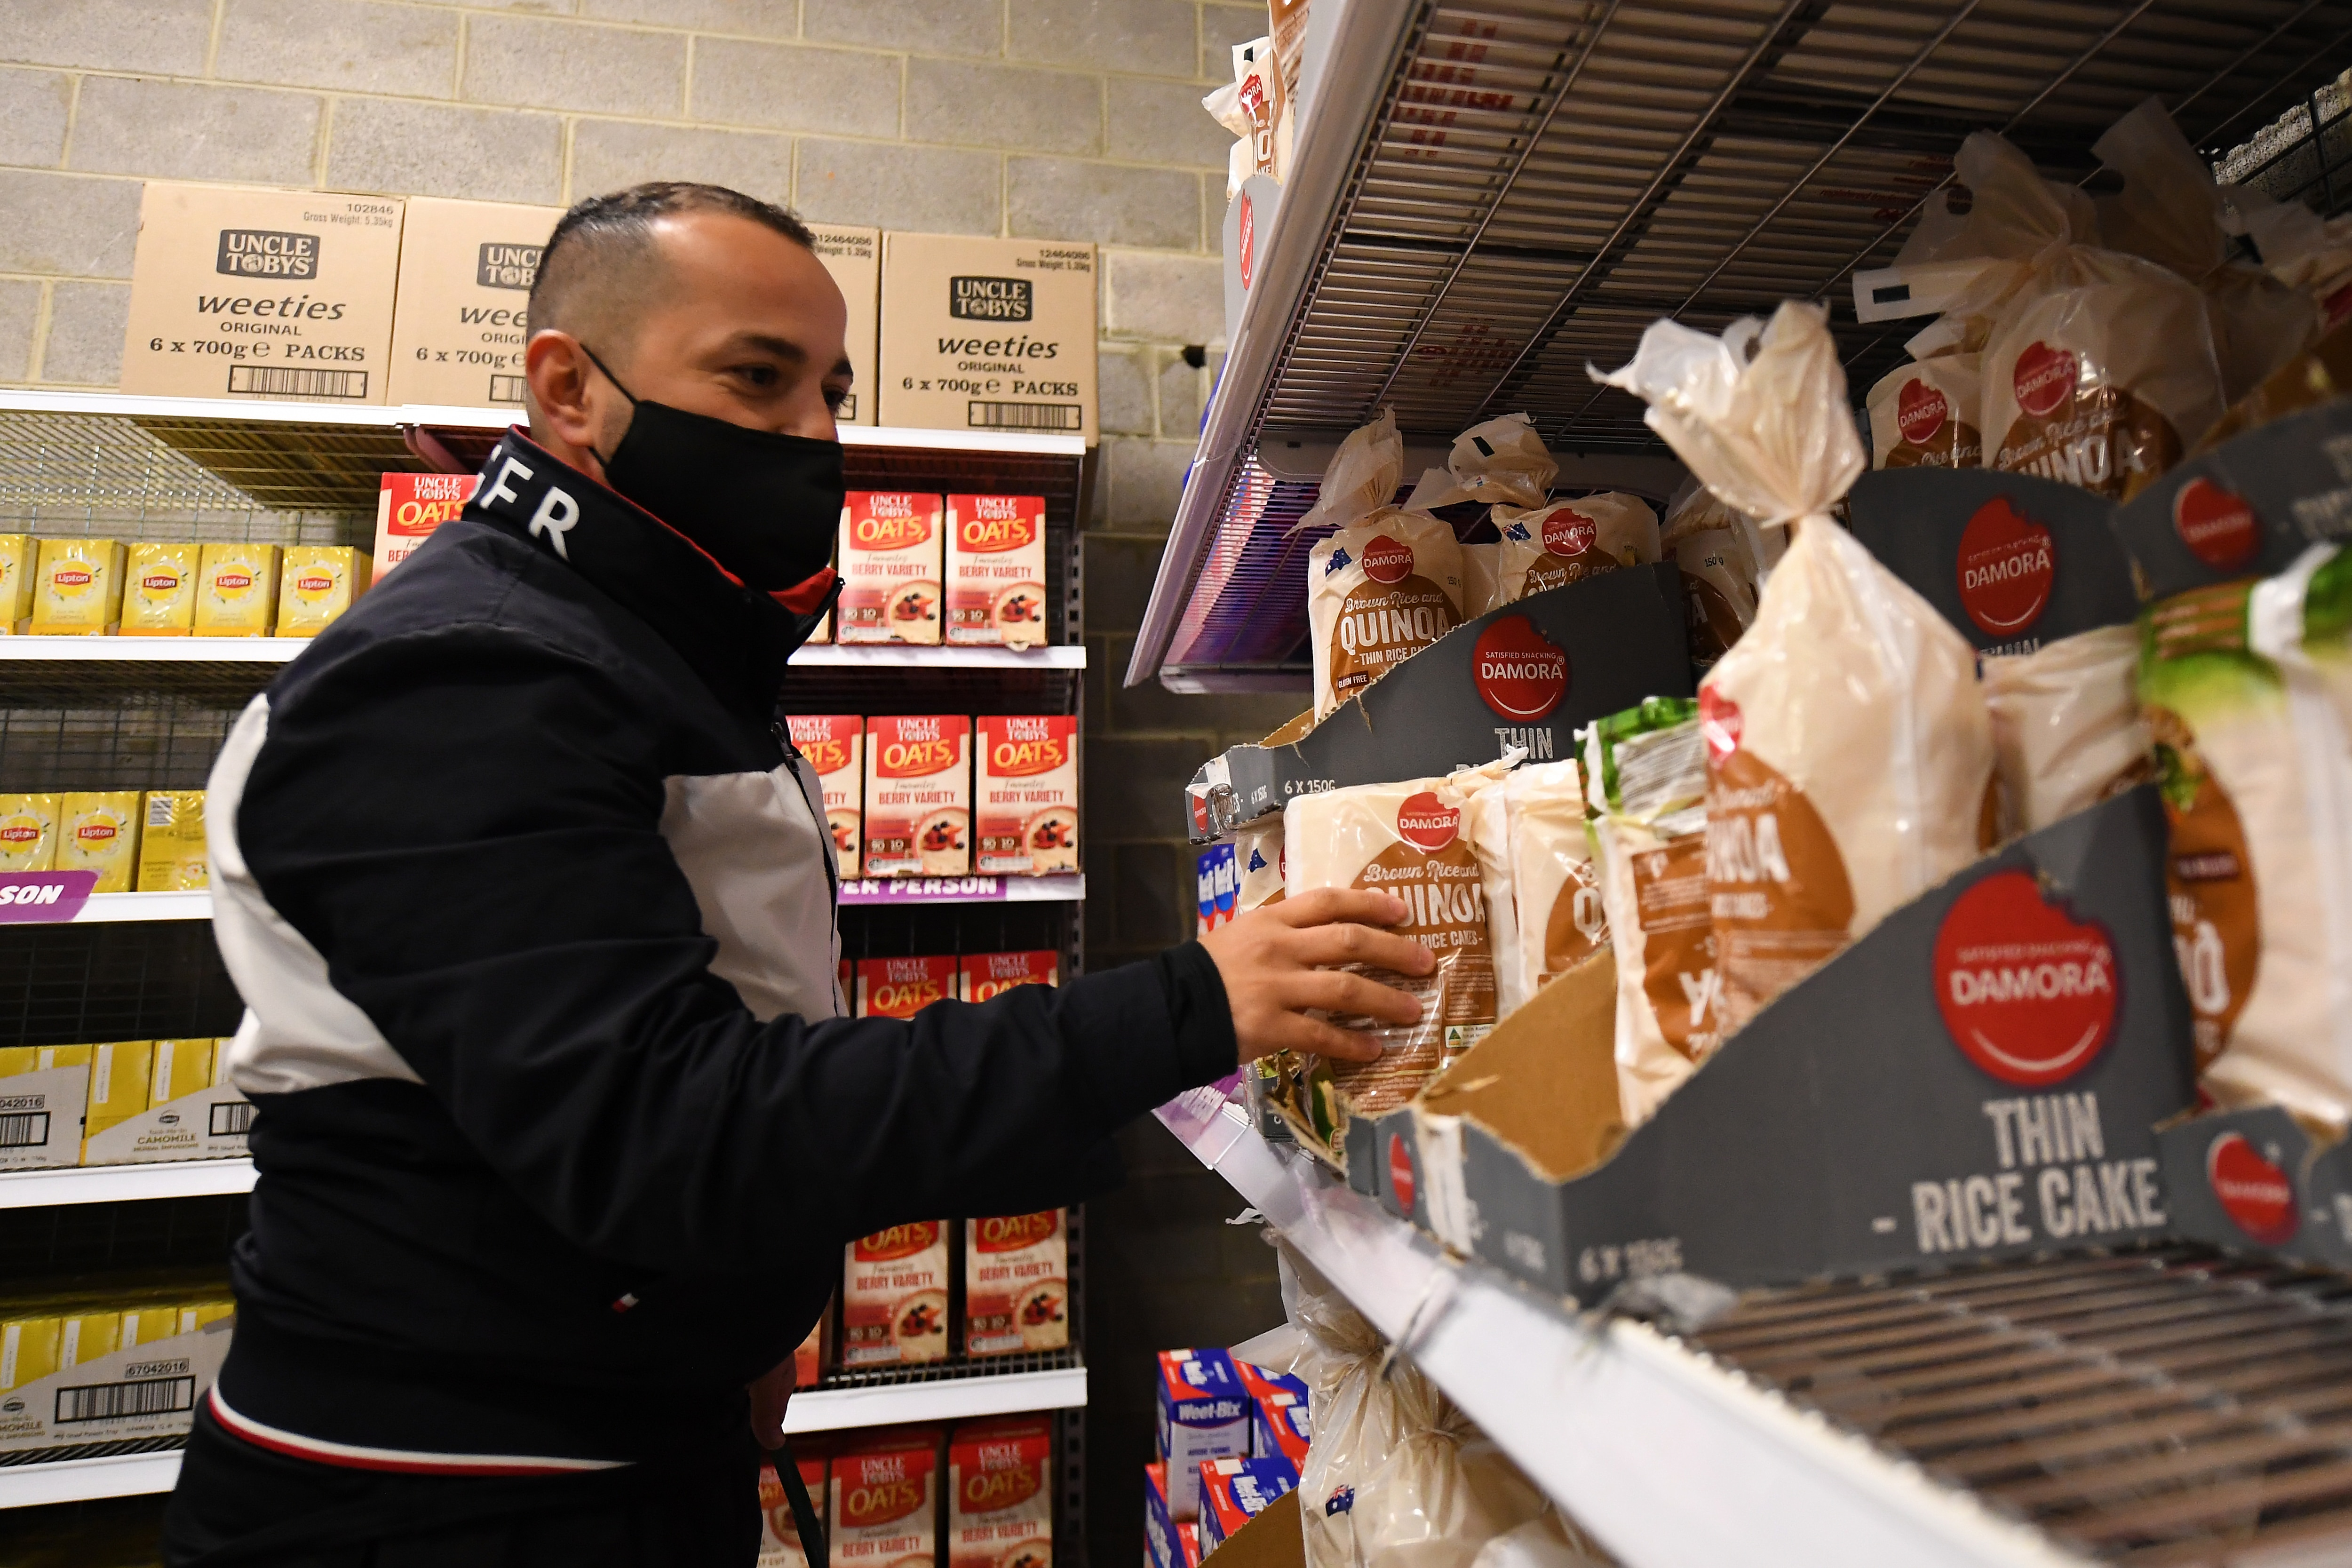 Interantional student Yasin Ilanbey collectes groceries at the Foodbank popup store in Melbourne, Friday, June 4, 2021.